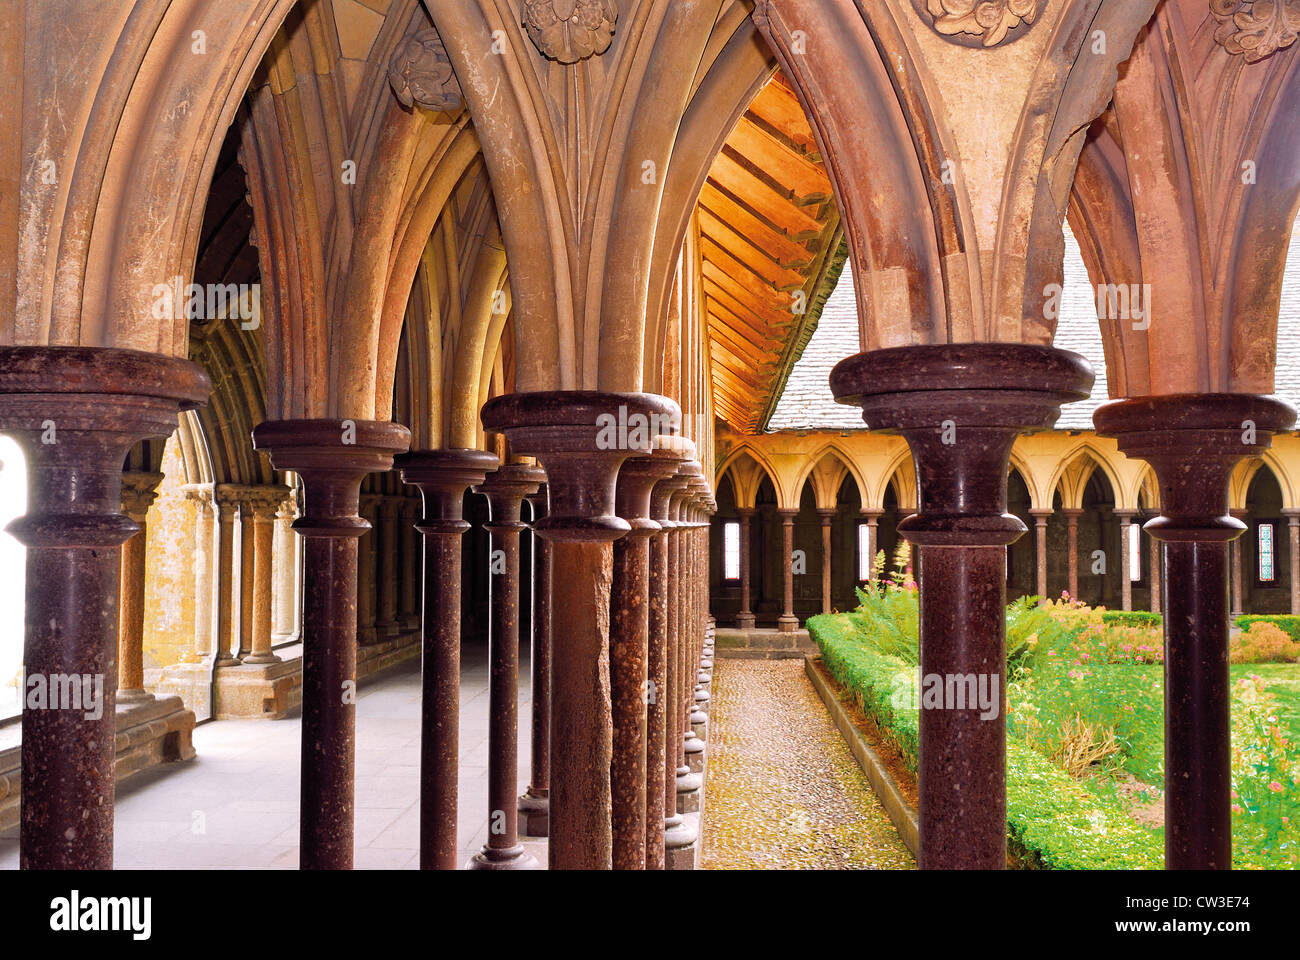 France, Normandie : Cloître de l'abbaye de Saint Pierre au Mont Saint Michel Photo Stock